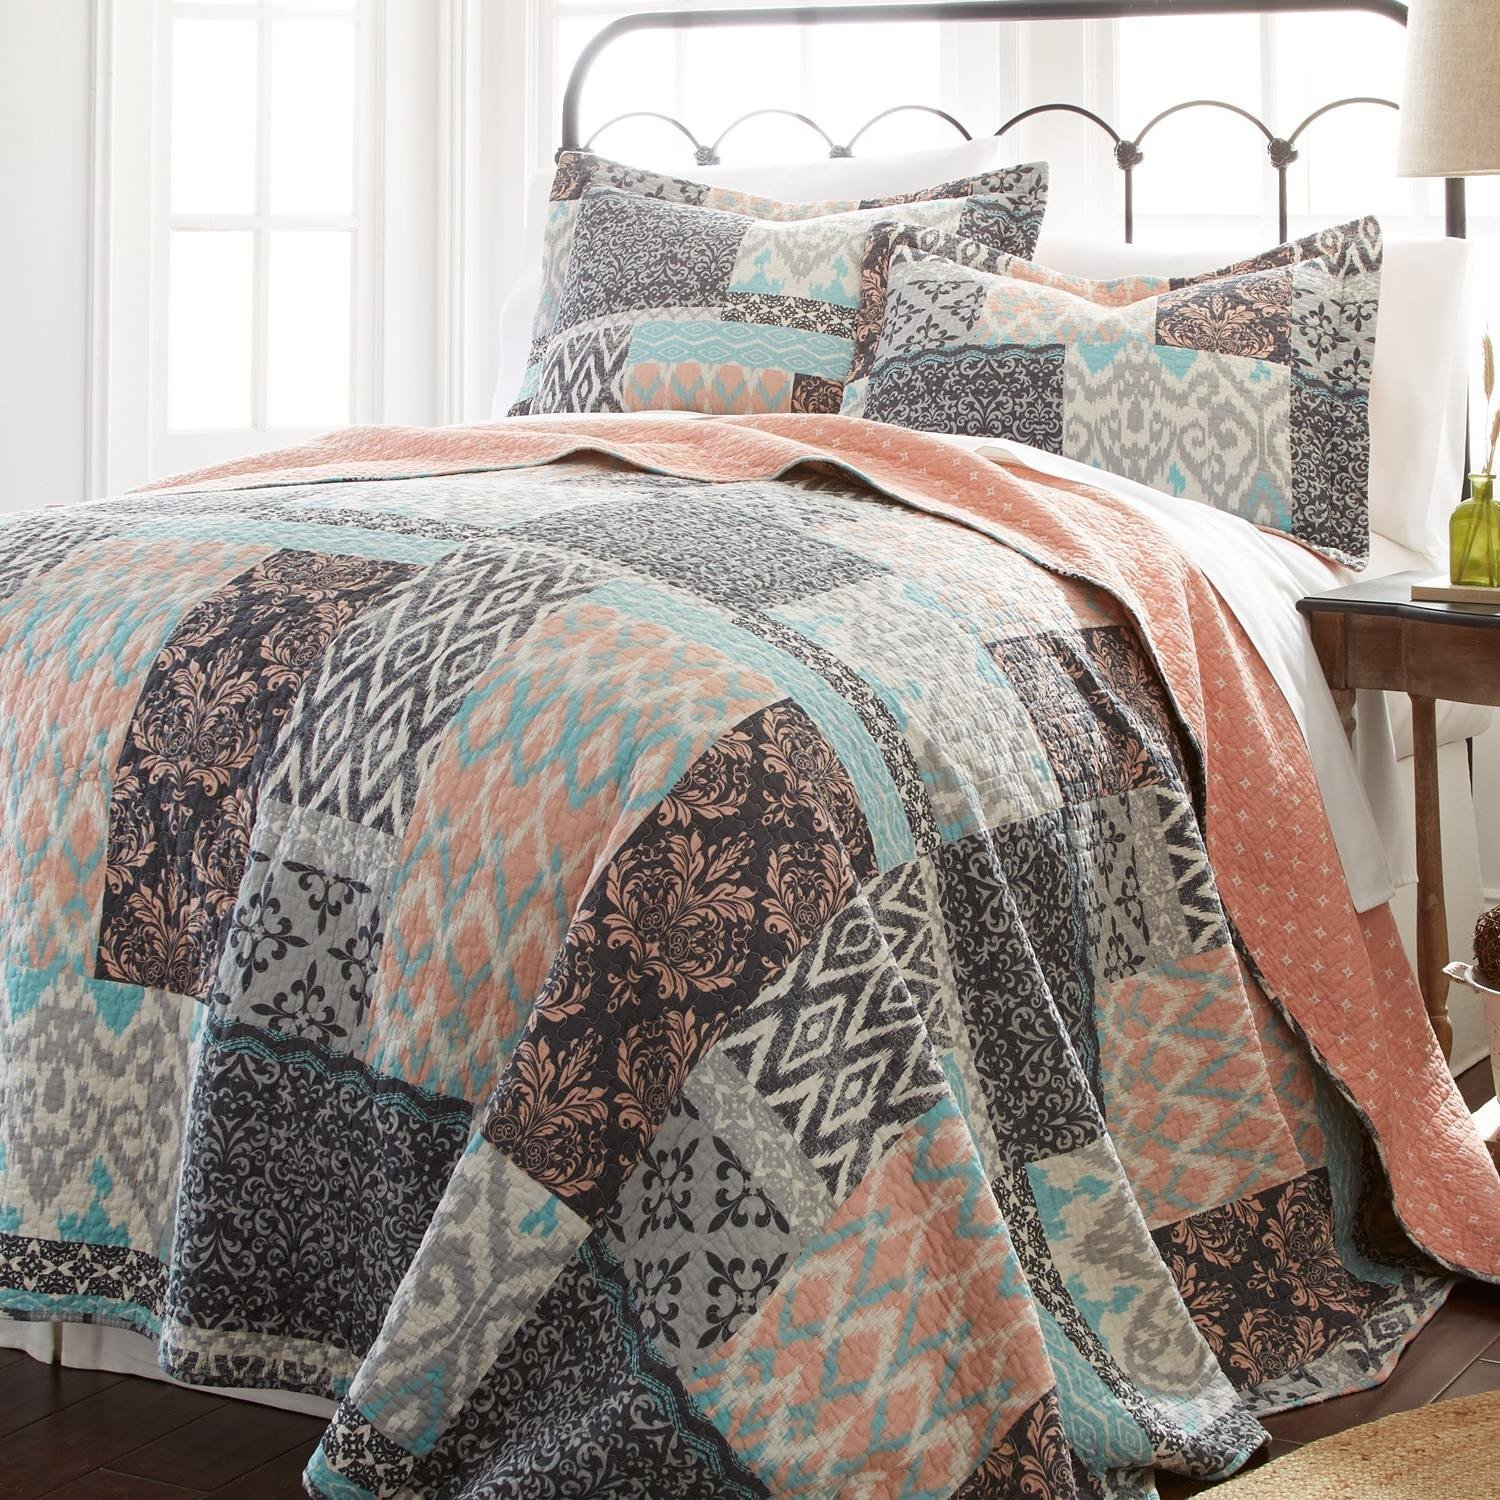 3 Piece Beautiful Pink Blue Grey White Full Queen Quilt Set, Geometric Damask Patchwork Themed Reversible Bedding Teal Grey Diamond Bohemian Boho Cottage Navy Rustic Pretty Vintage Stylish, Cotton